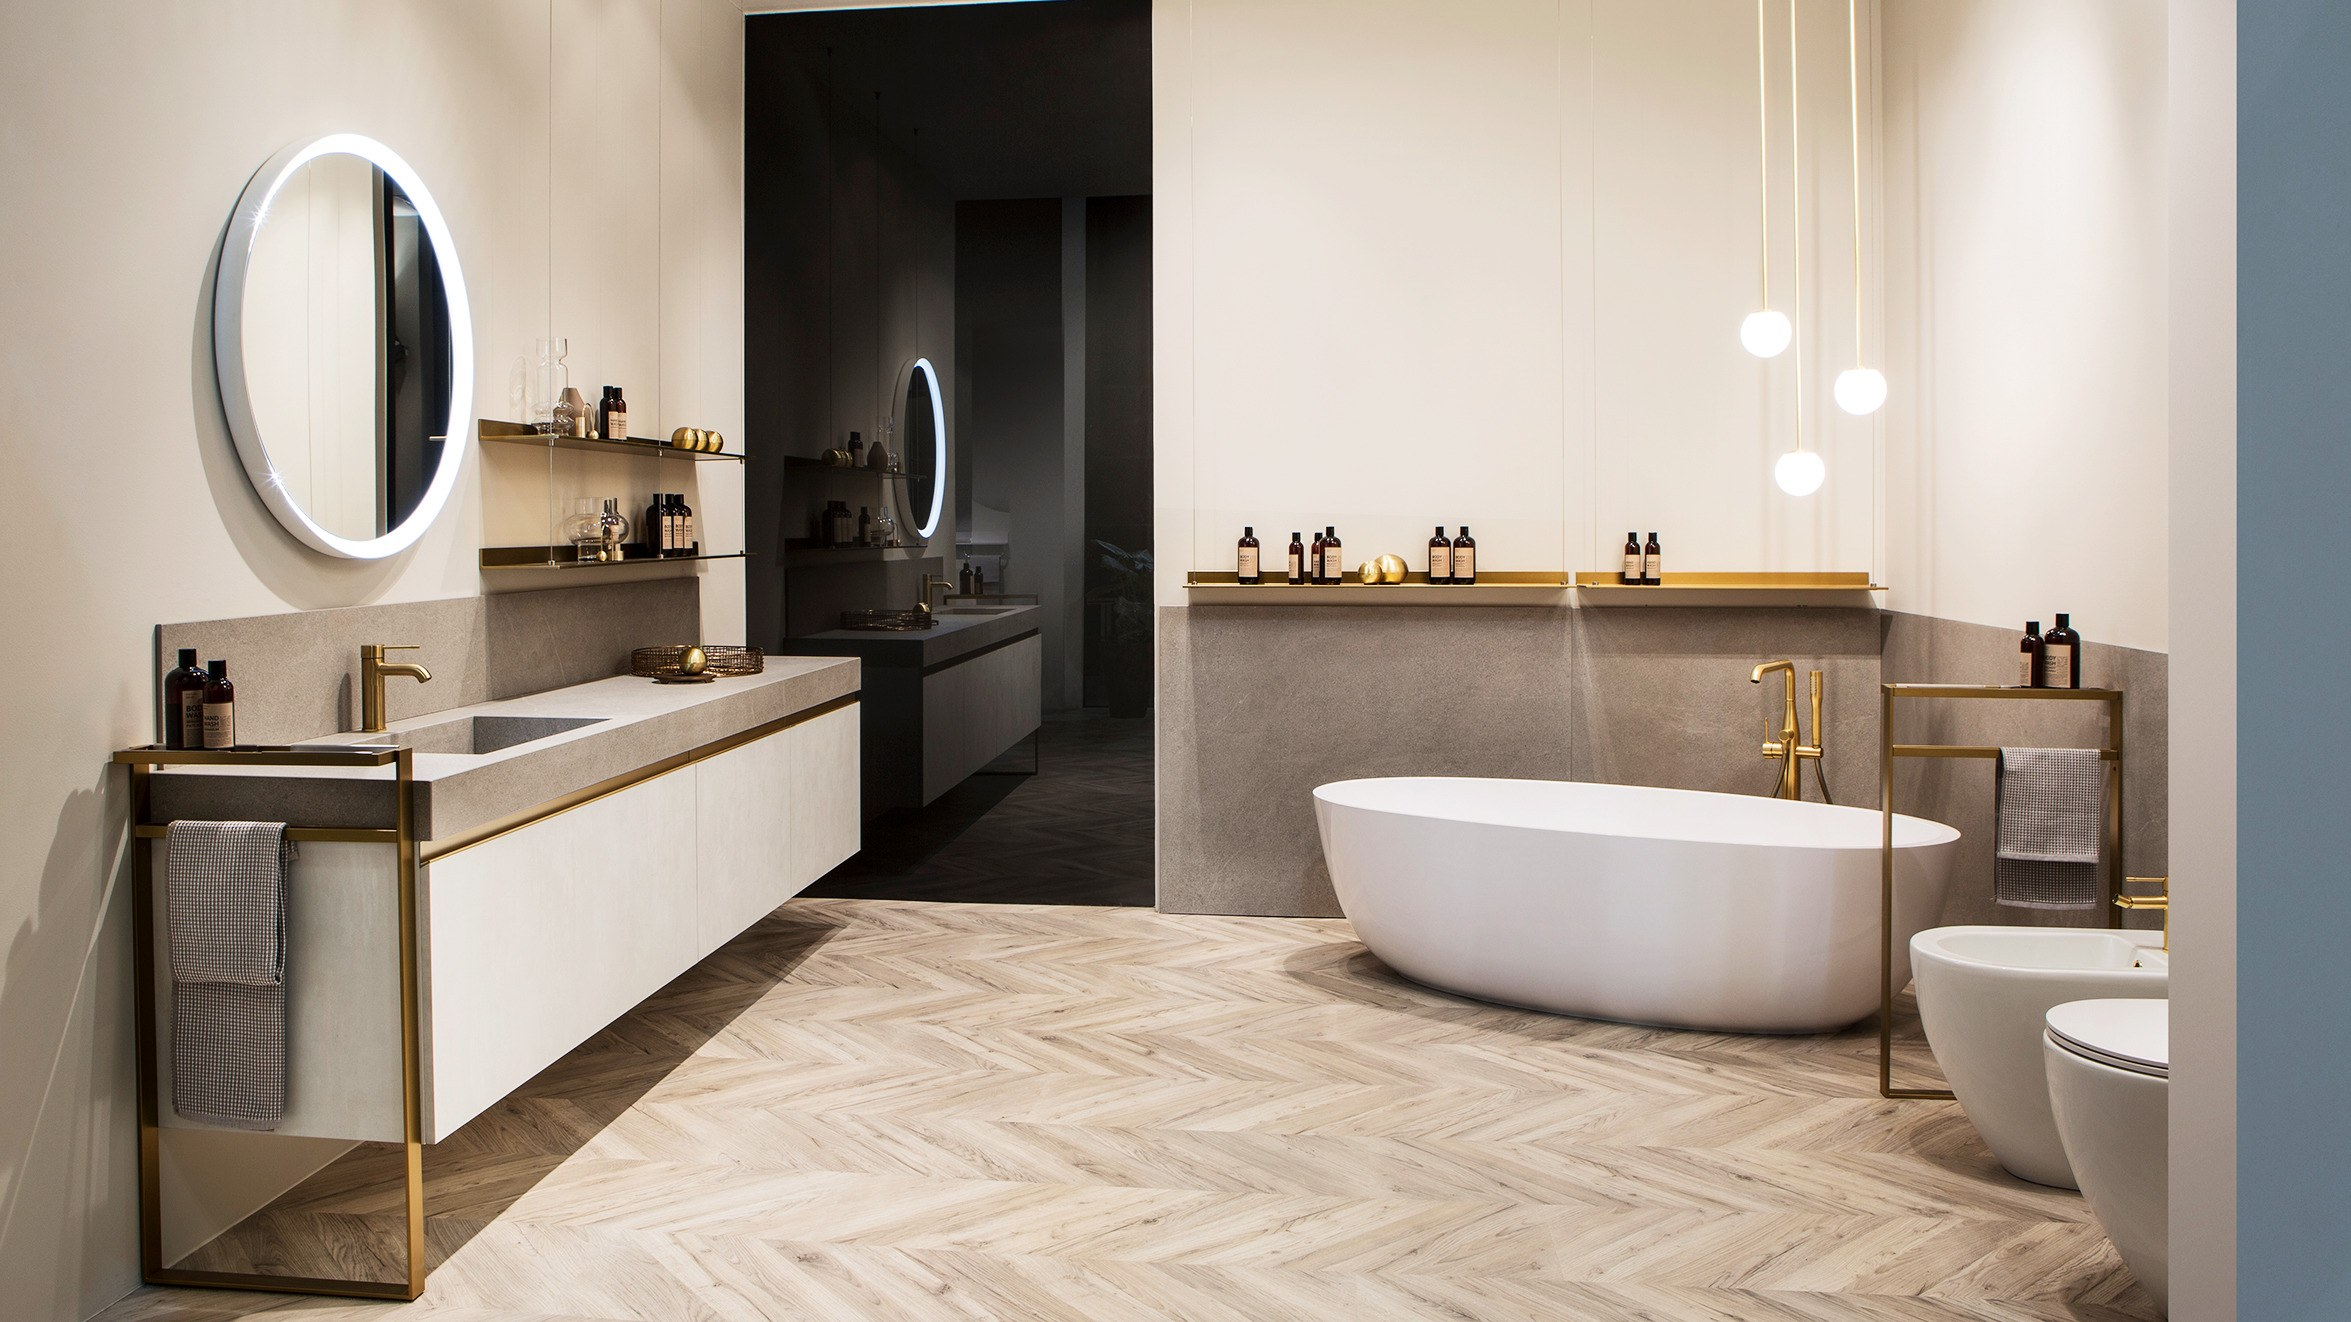 Best of 8: Great Bath Design Awards by Architectural Digest